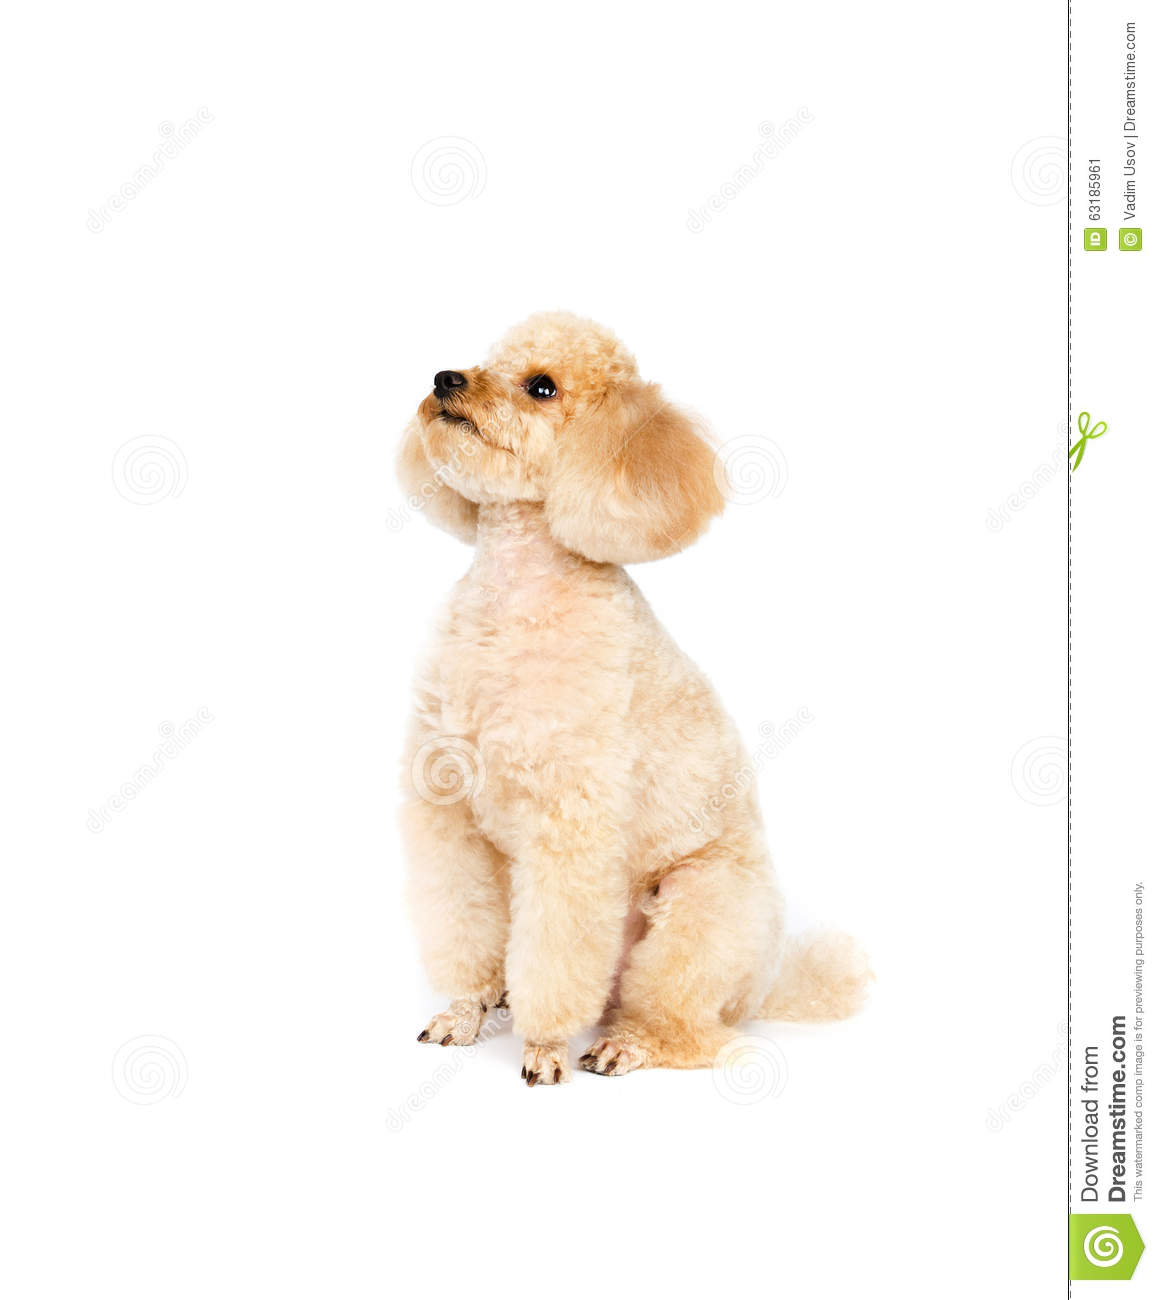 Apricot small poodle sitting on a white background